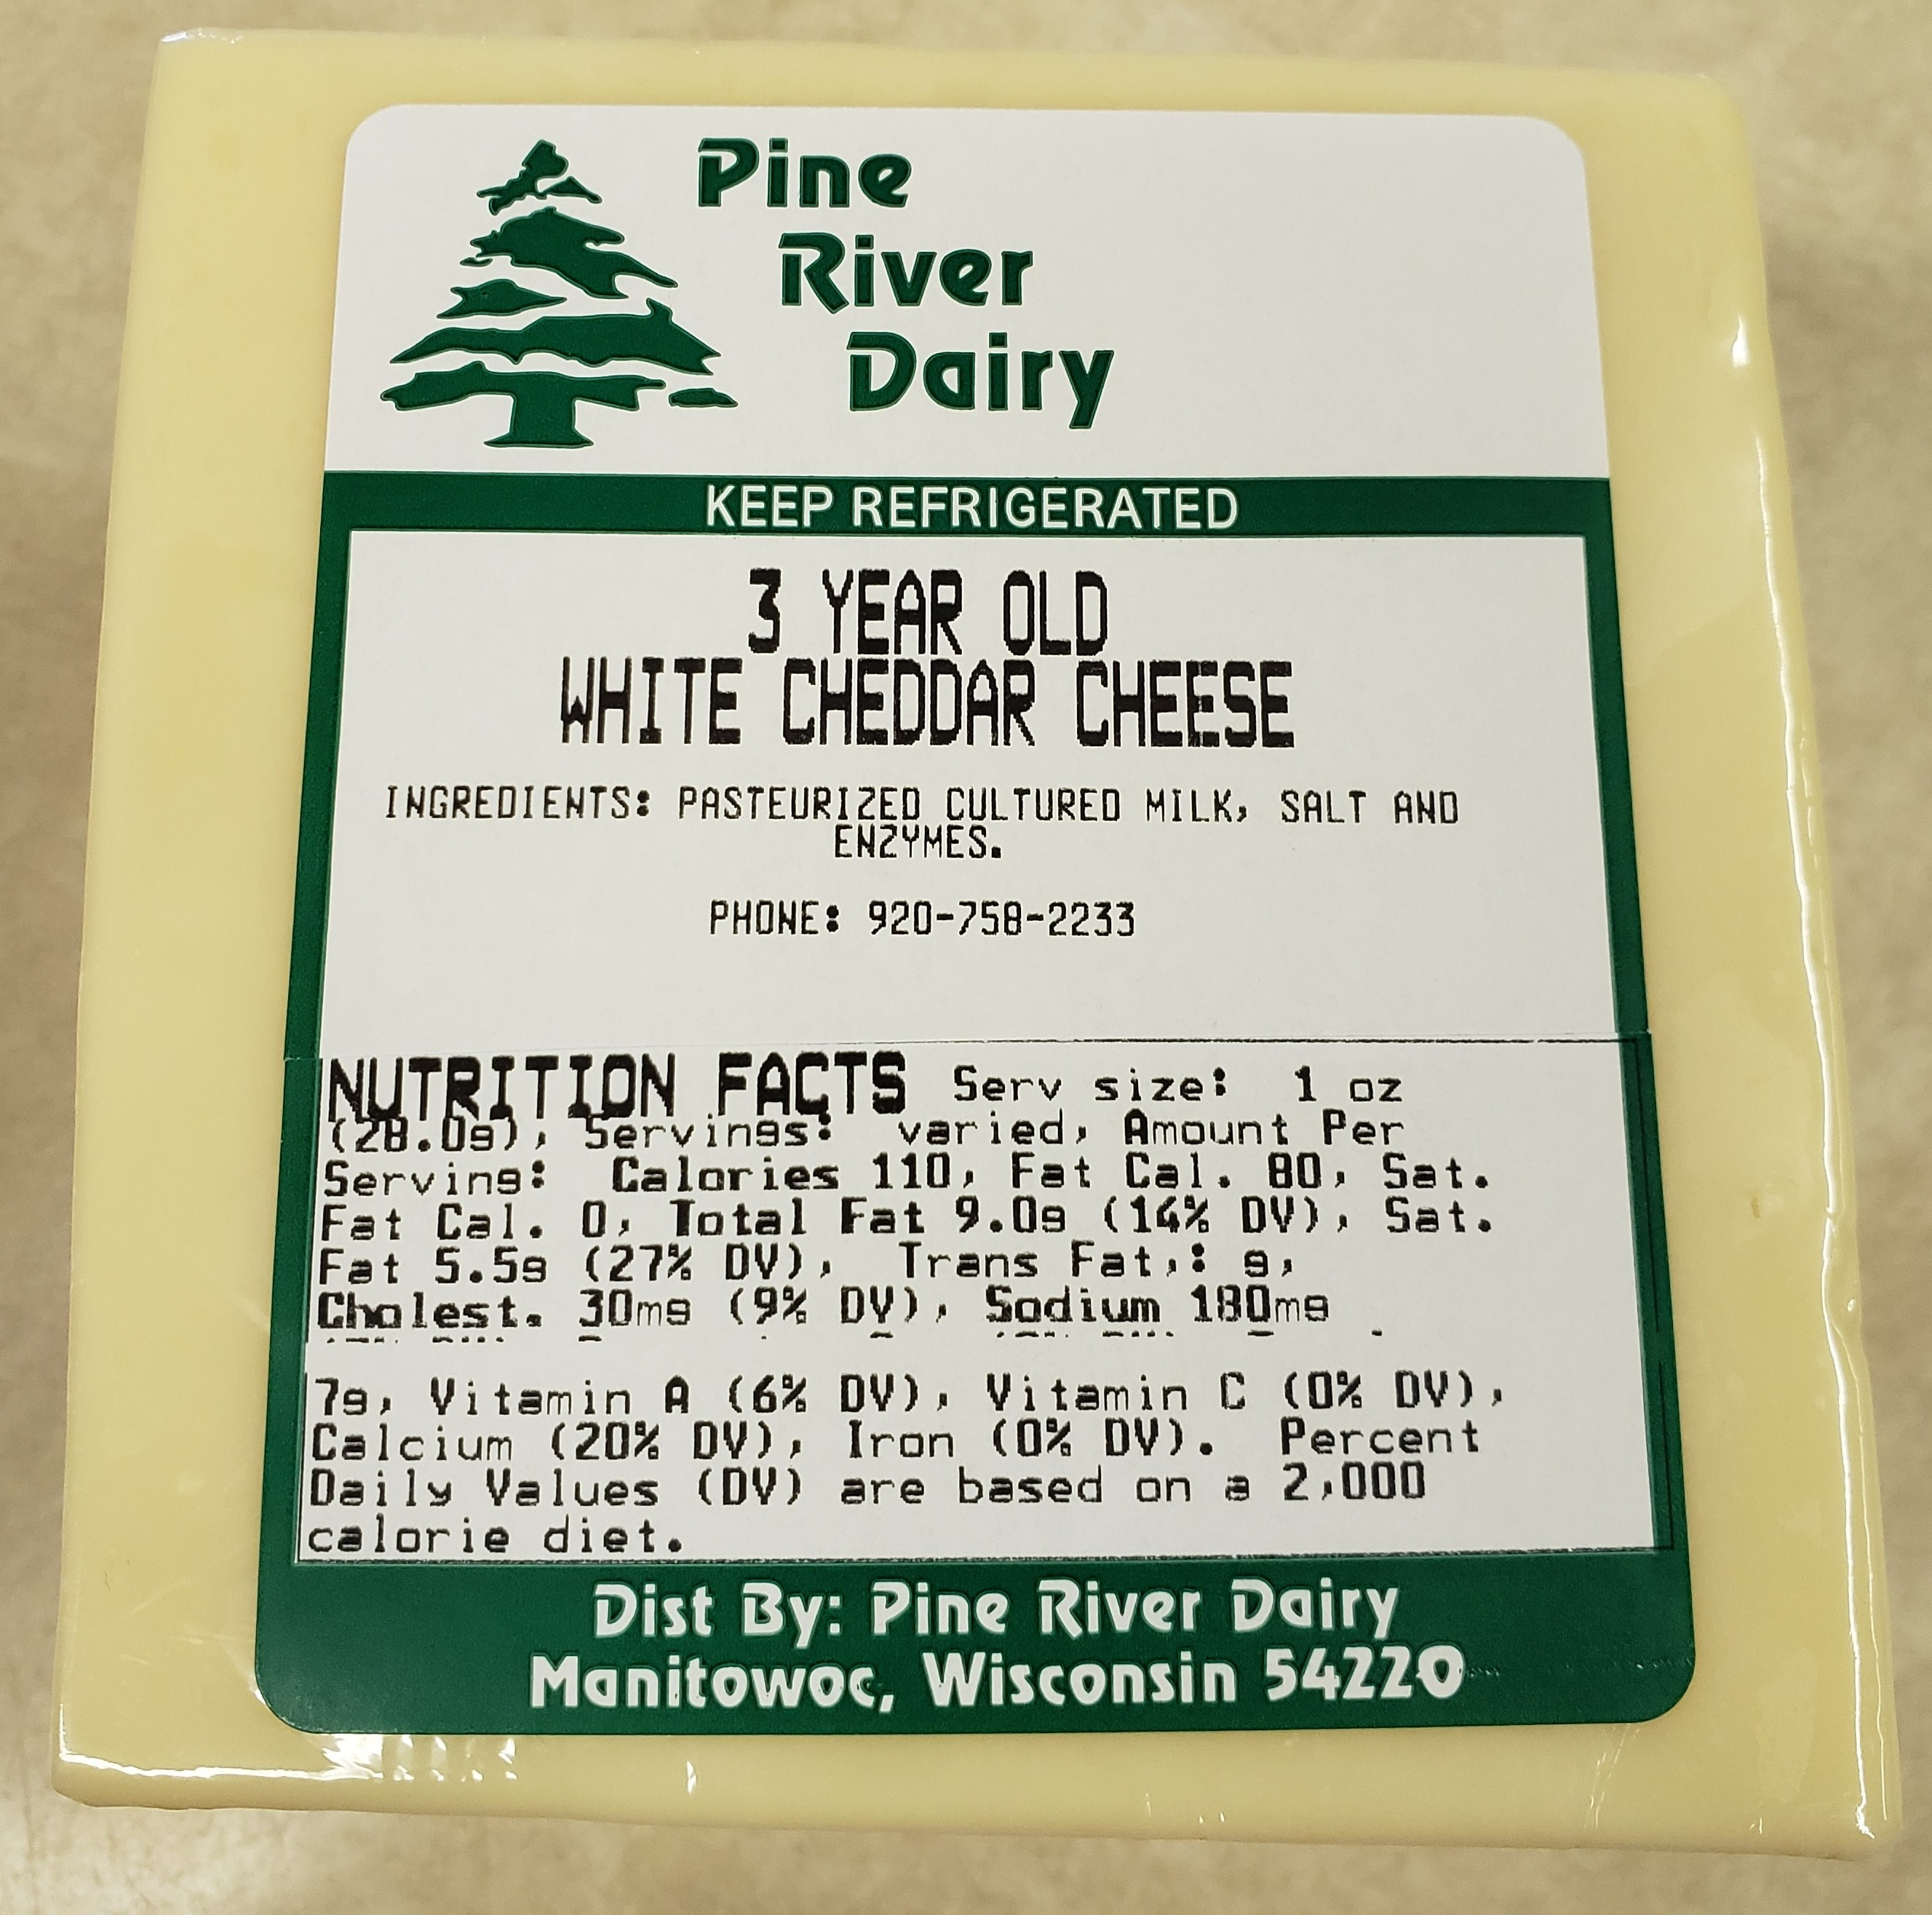 3 Year Old White Cheddar Cheese